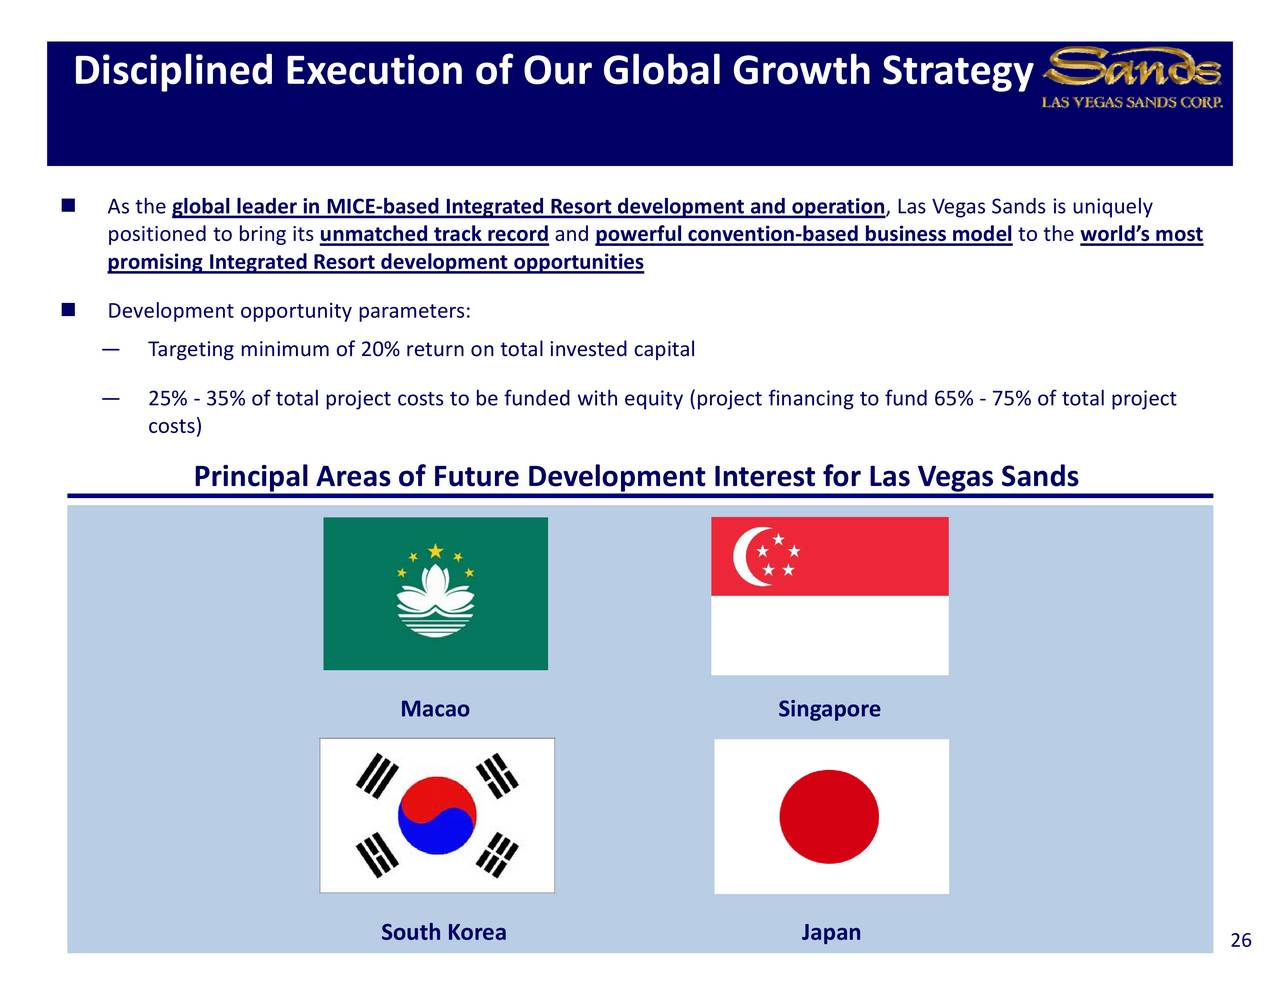 strategy las vegas sands singapore Although the las vegas strip is the third-largest casino market globally, las vegas sands (nyse: lvs) derives just around 13% of its revenues from the region.